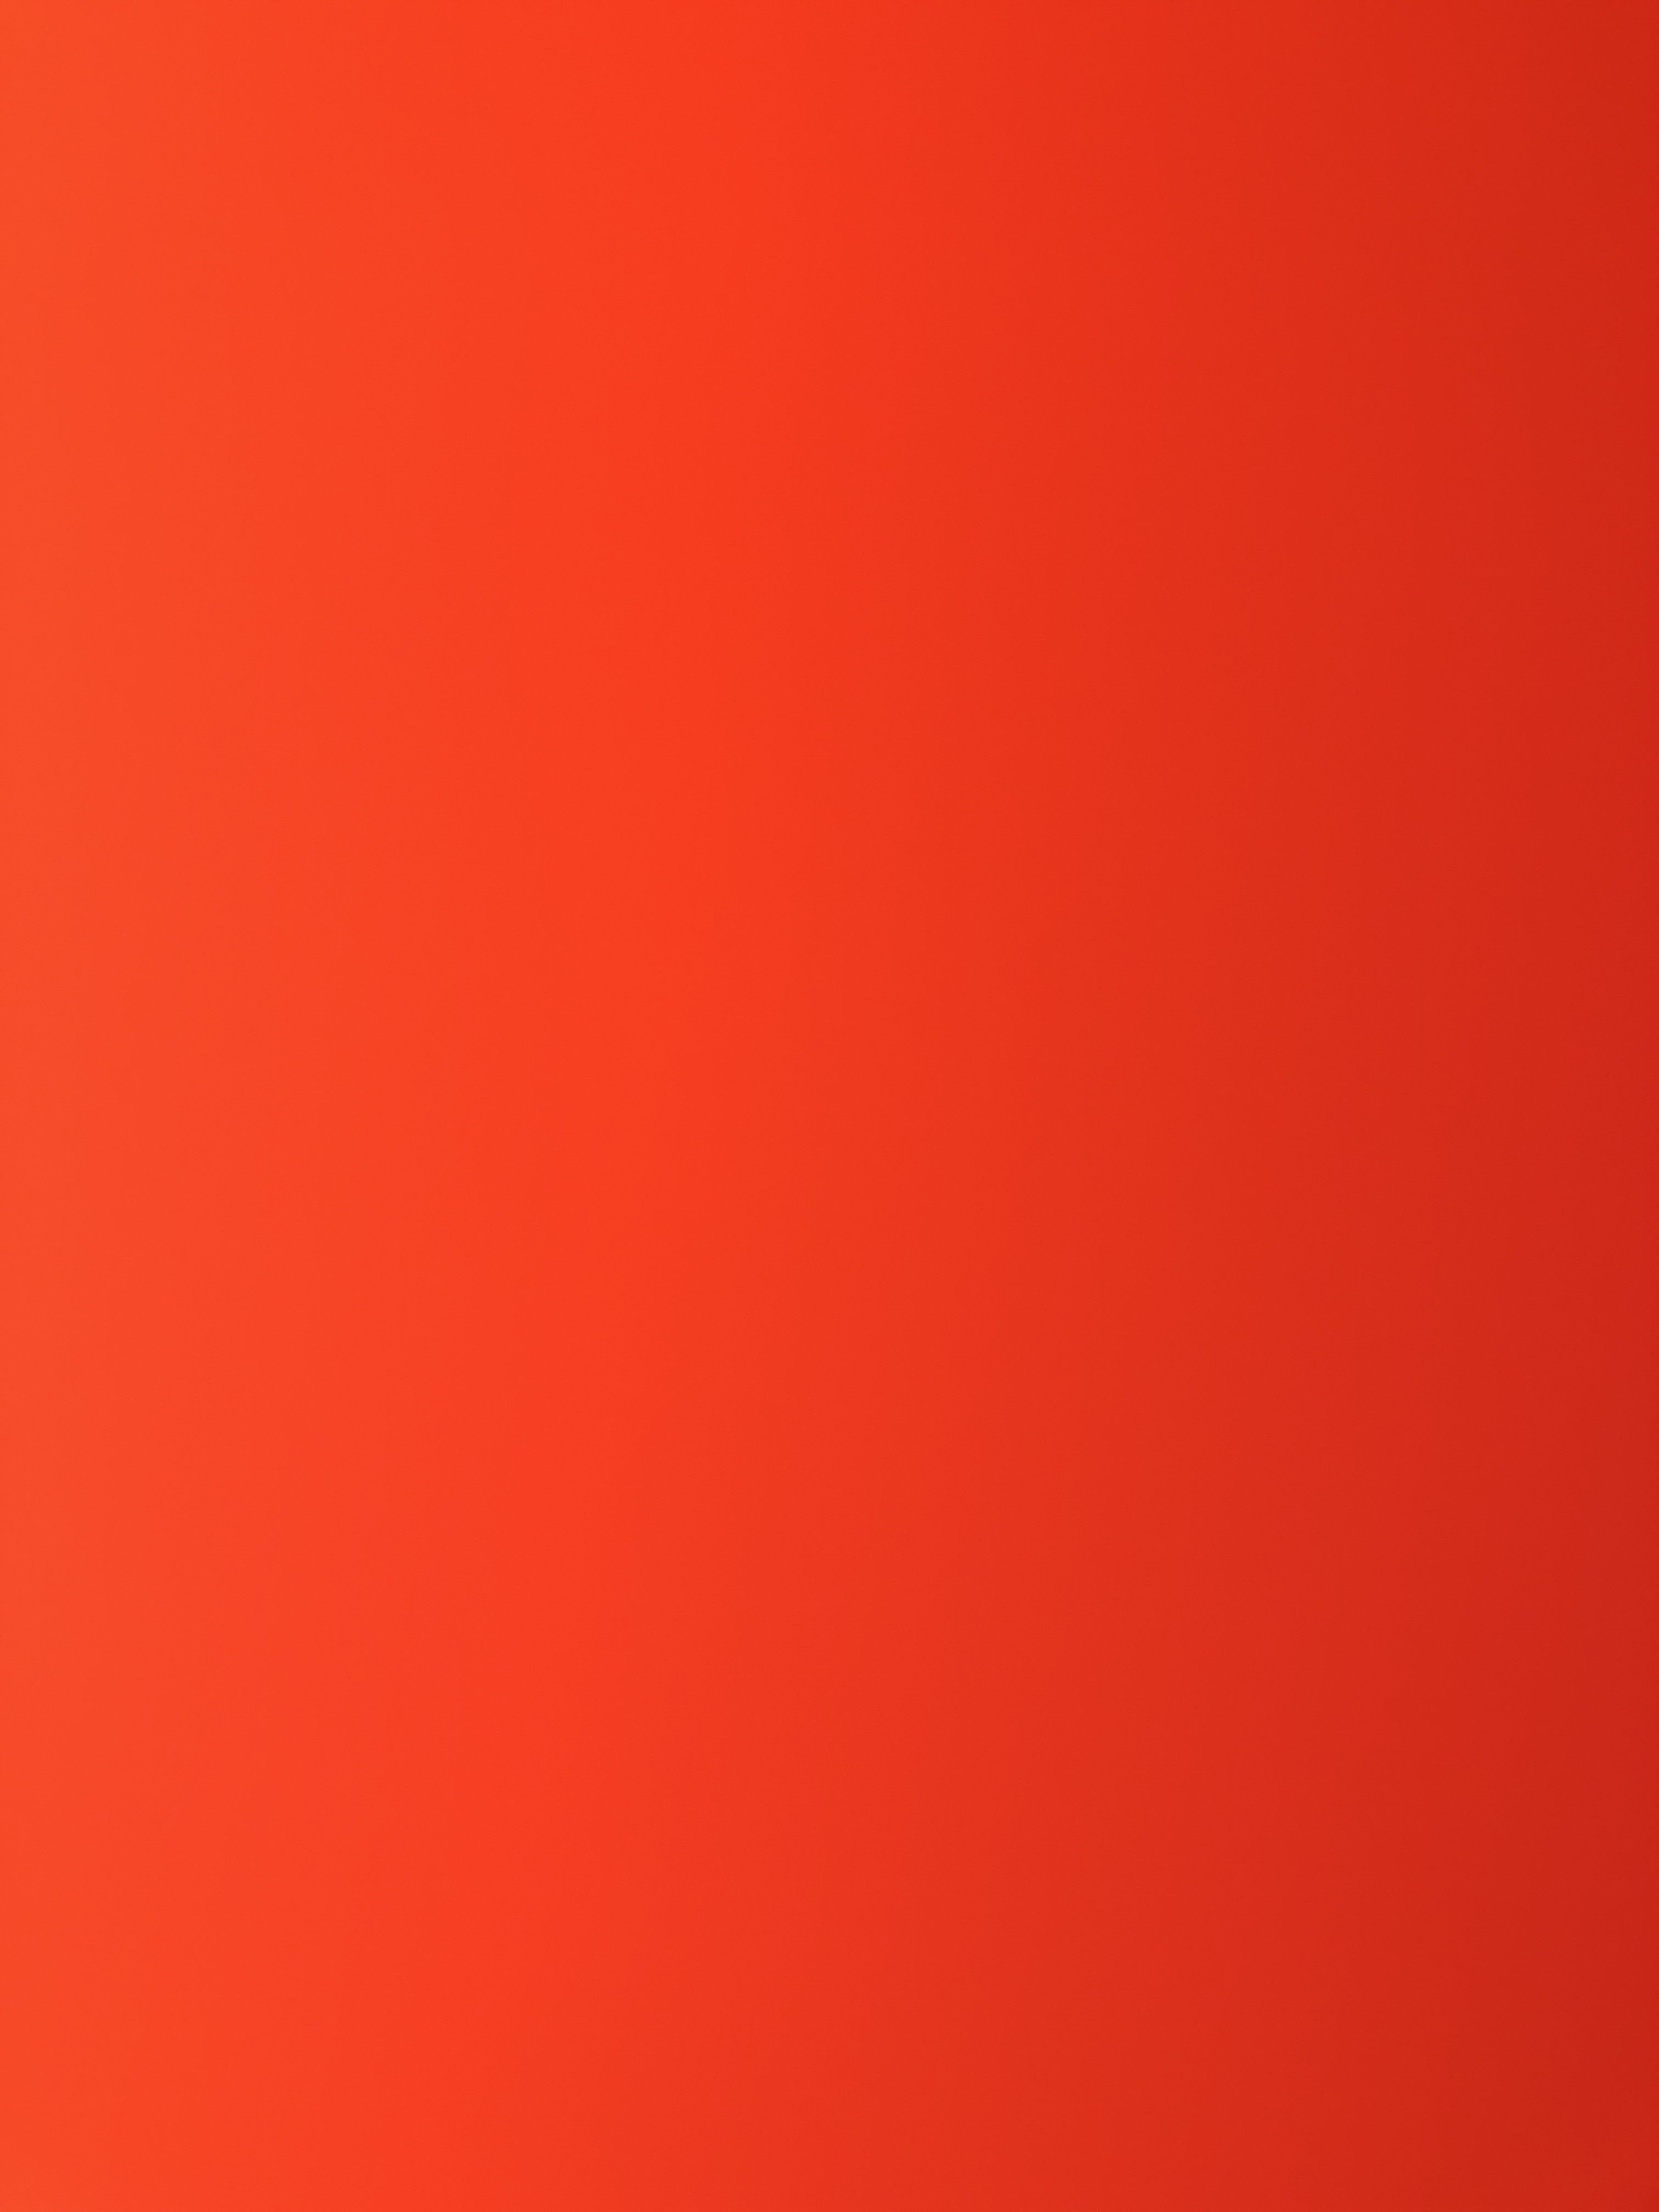 Pin by Alexis on Me Red wallpaper, Solid color